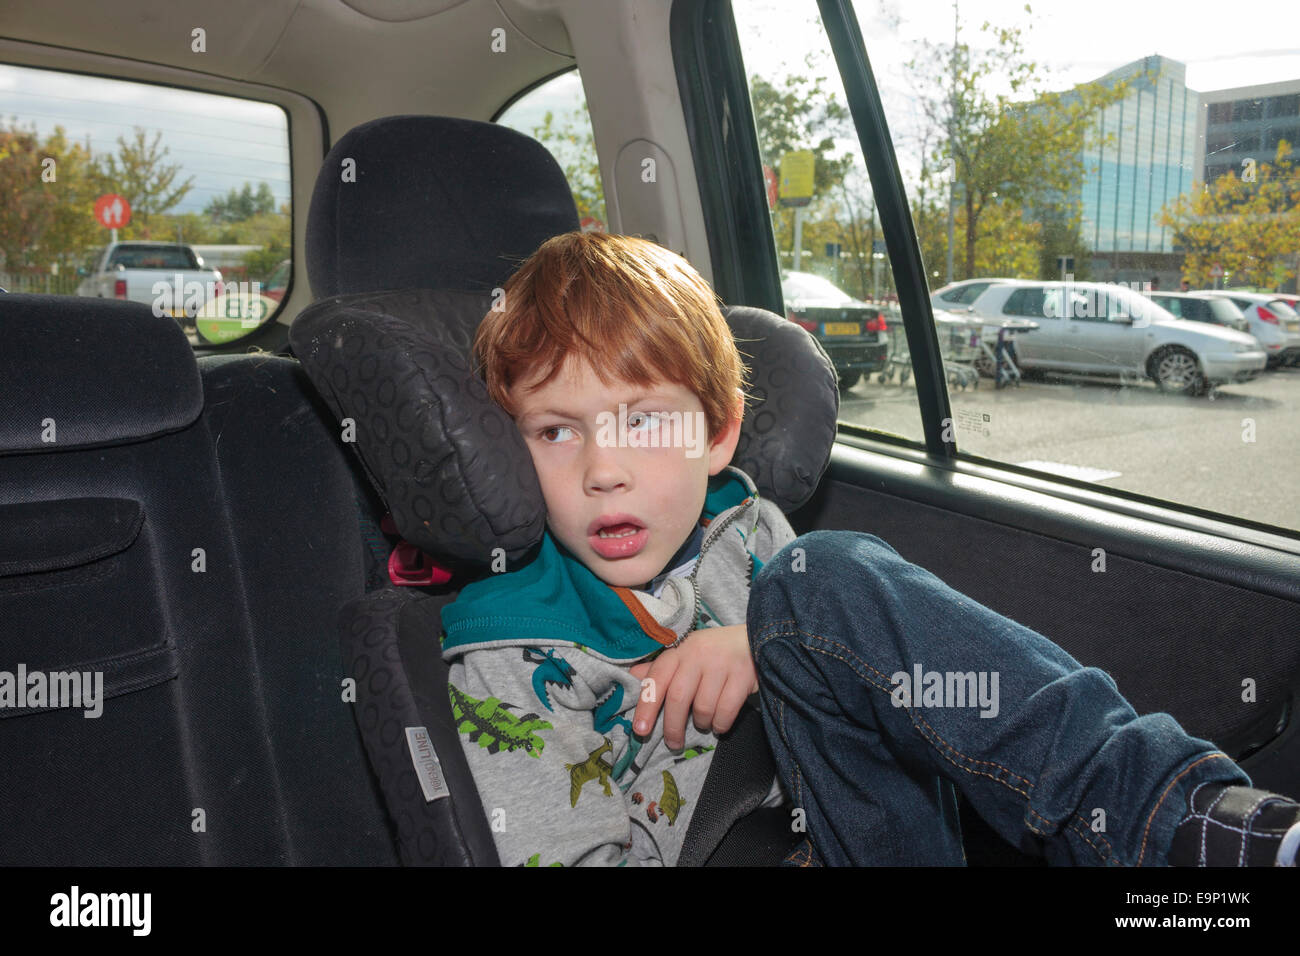 A Young Old Boy Looking Bored Sitting In Car Seat Parked At Supermarket Park